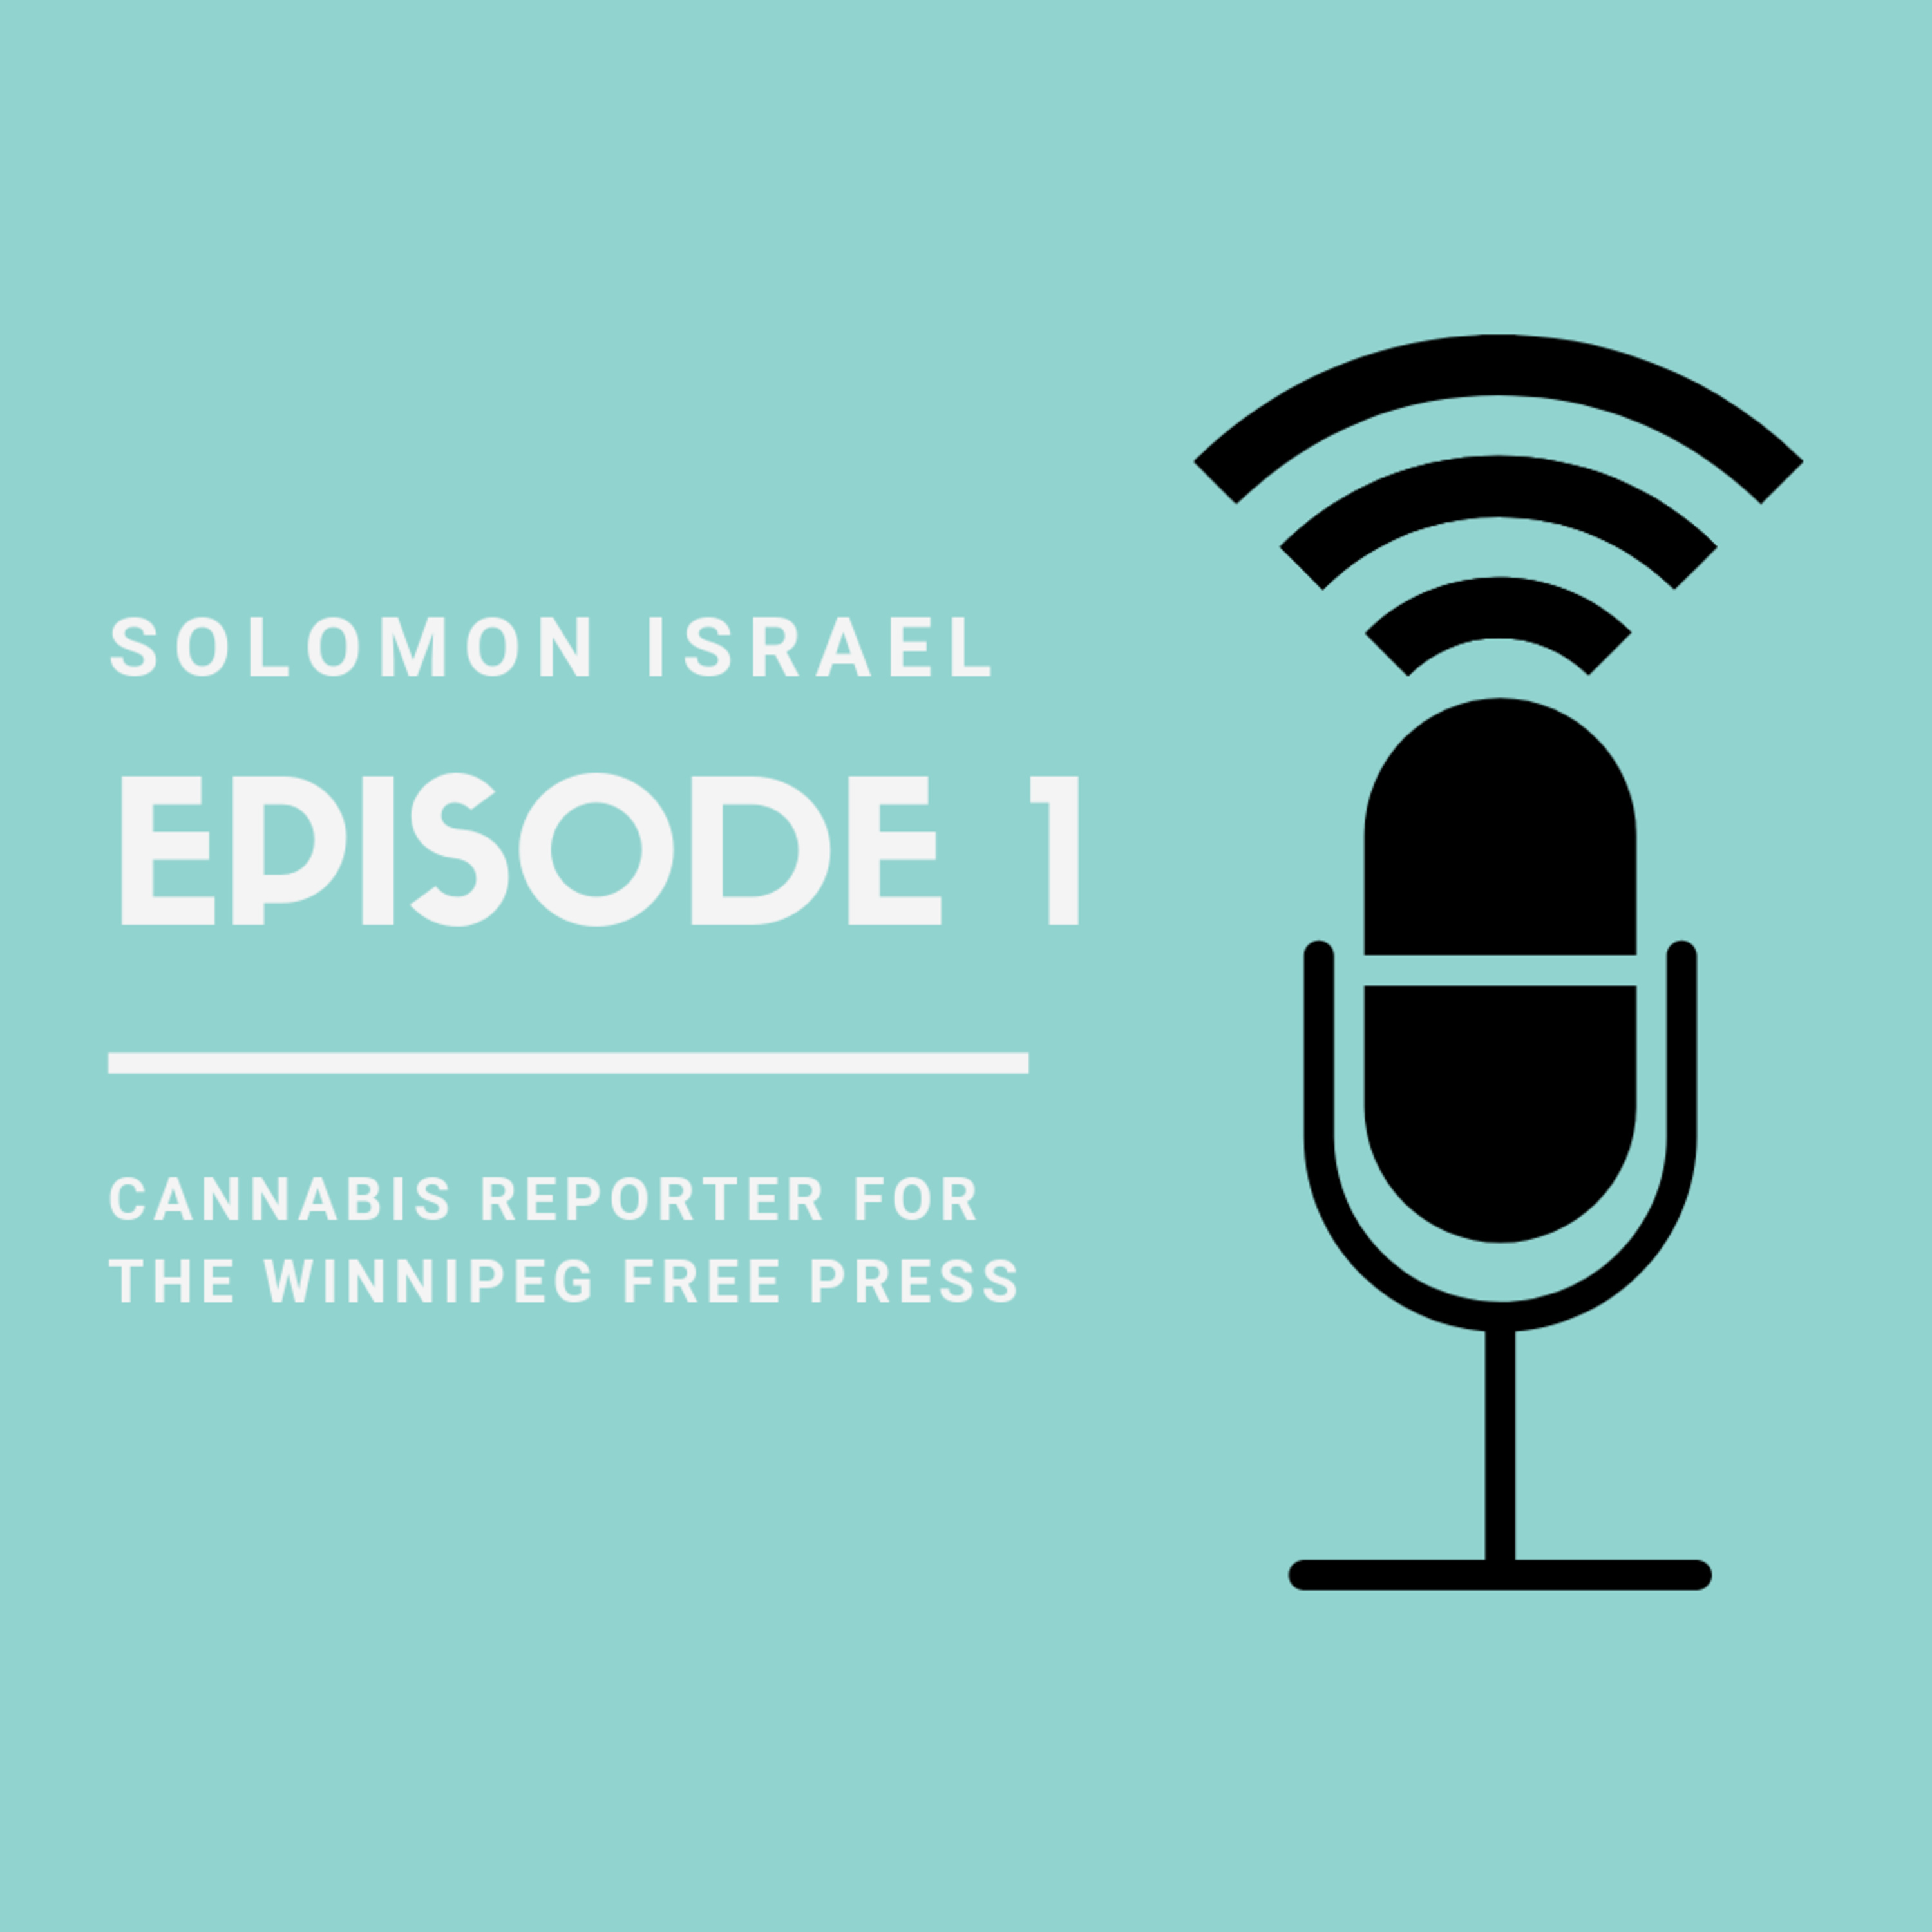 Solomon Israel and Cannabis Reporting